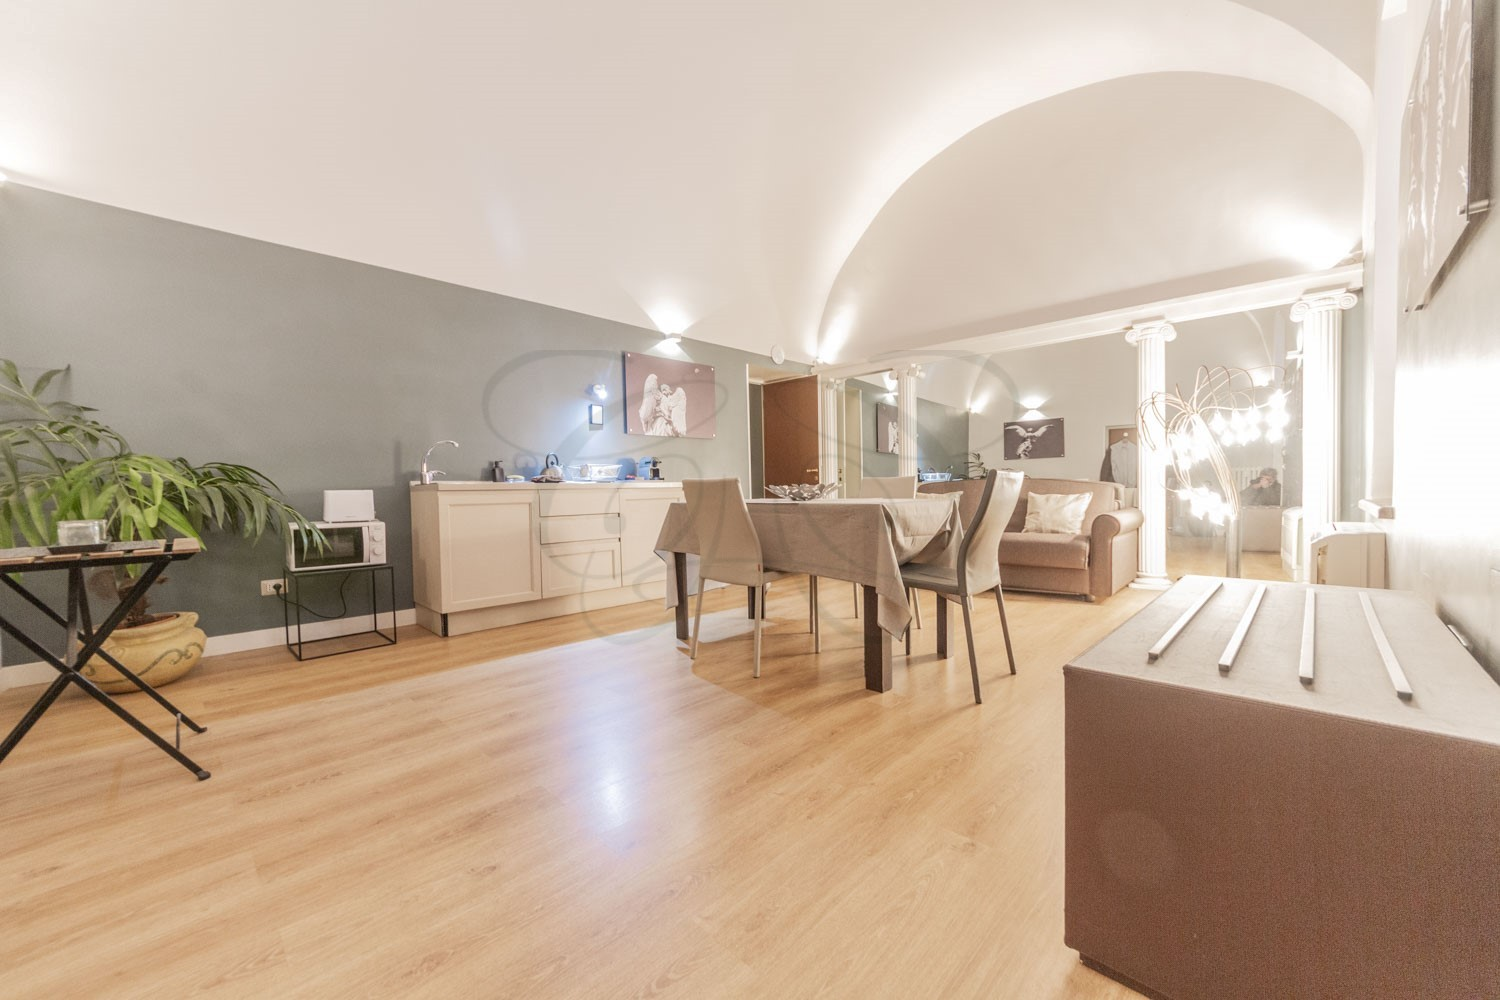 Luxury Rent Rome Center: 100 m2 Finely Furnished Apartment